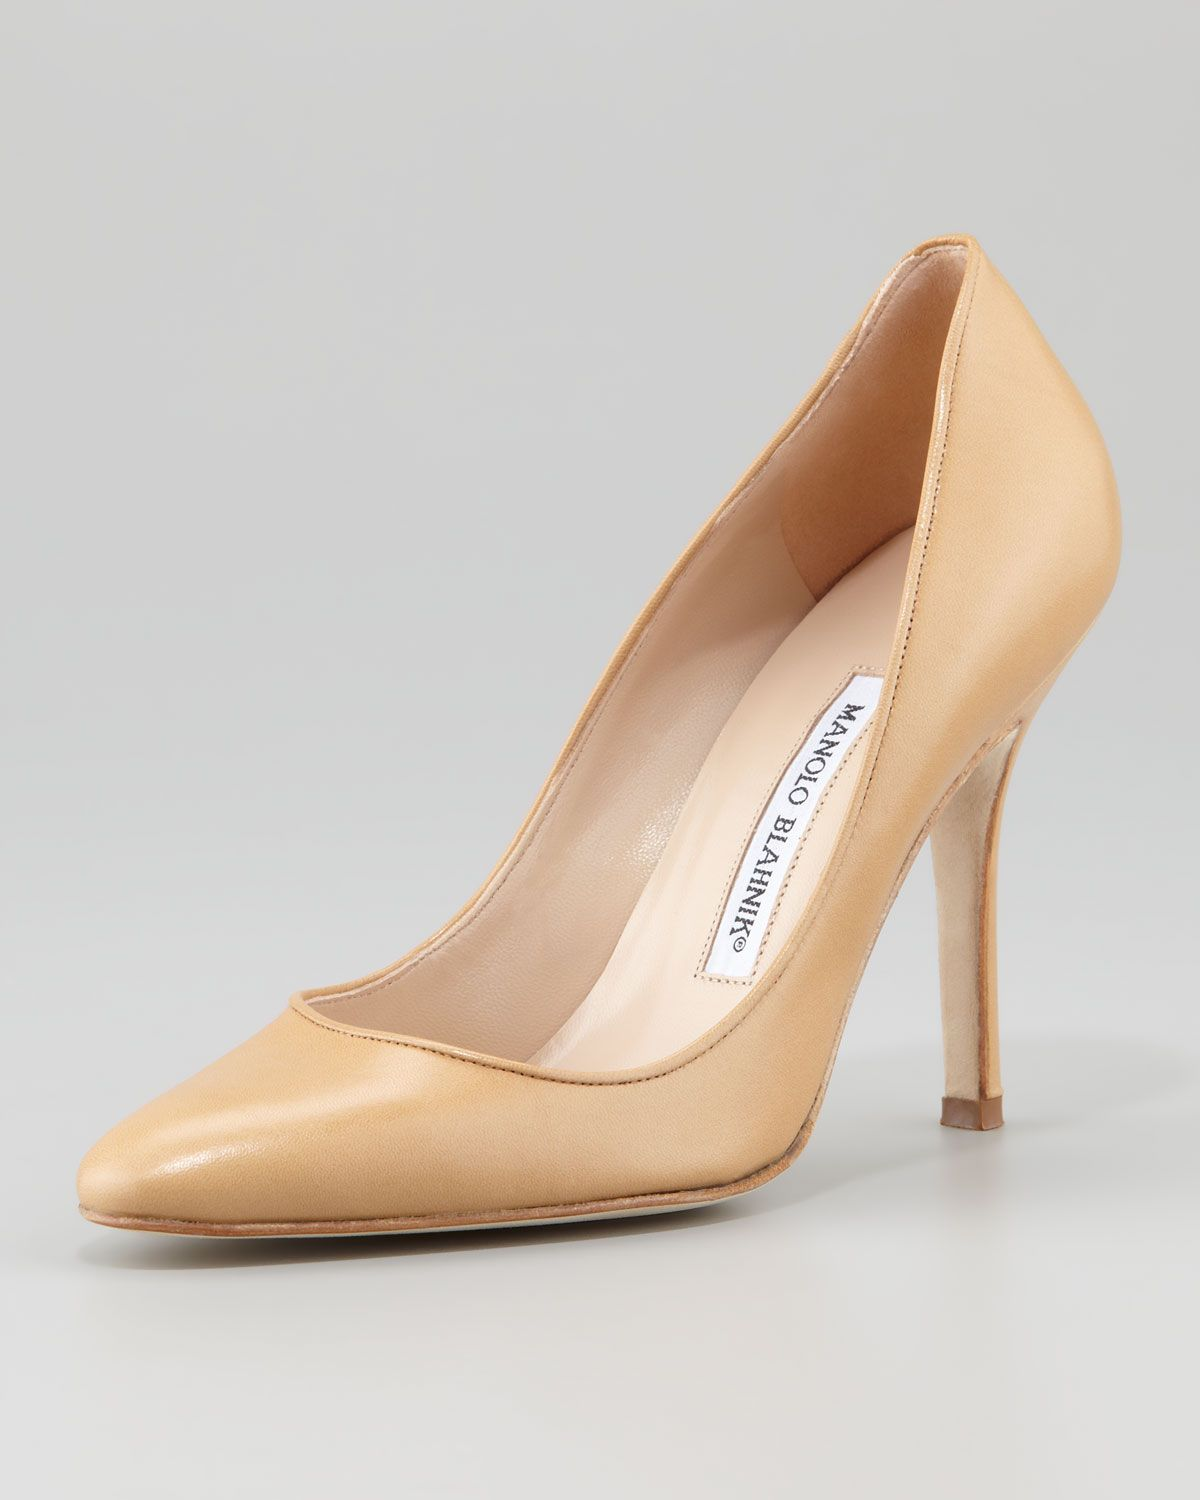 Manolo Blahnik Tuccio Pointed-Toe Pumps free shipping extremely 4OfwlBU